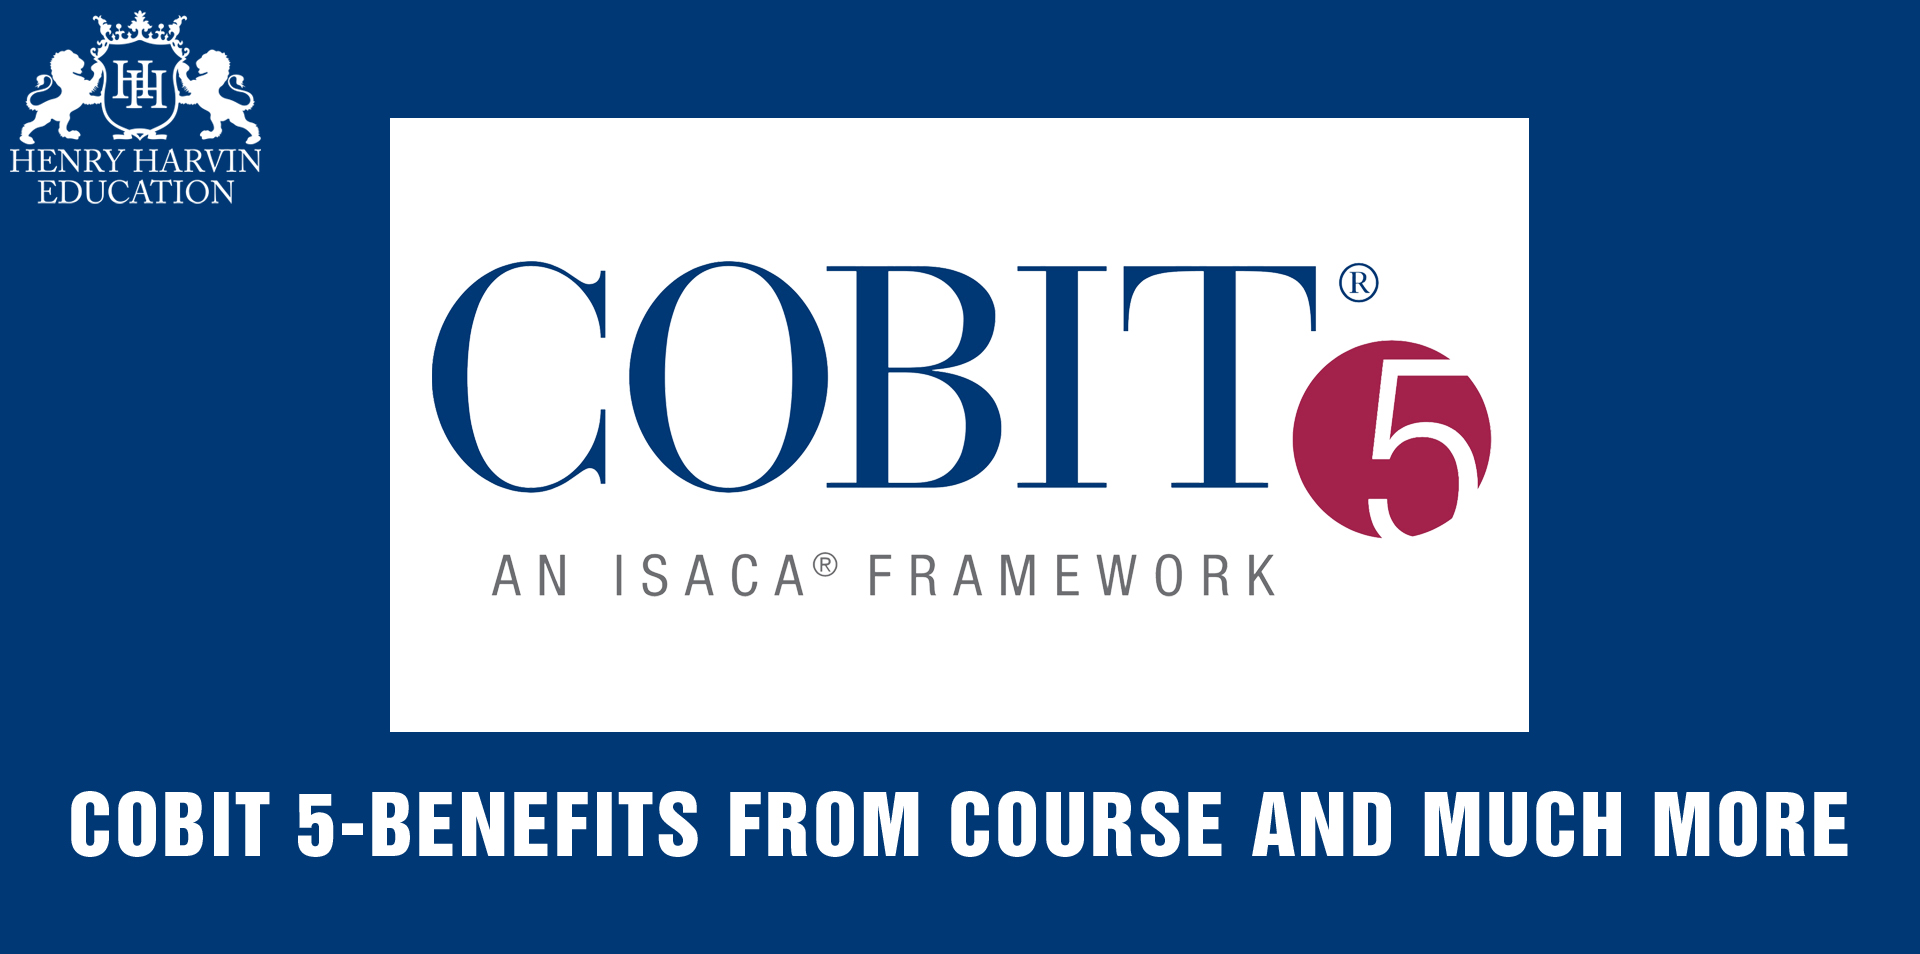 COBIT 5 - An ISACA Framework   COBIT 5-Benefits from Course and Much More